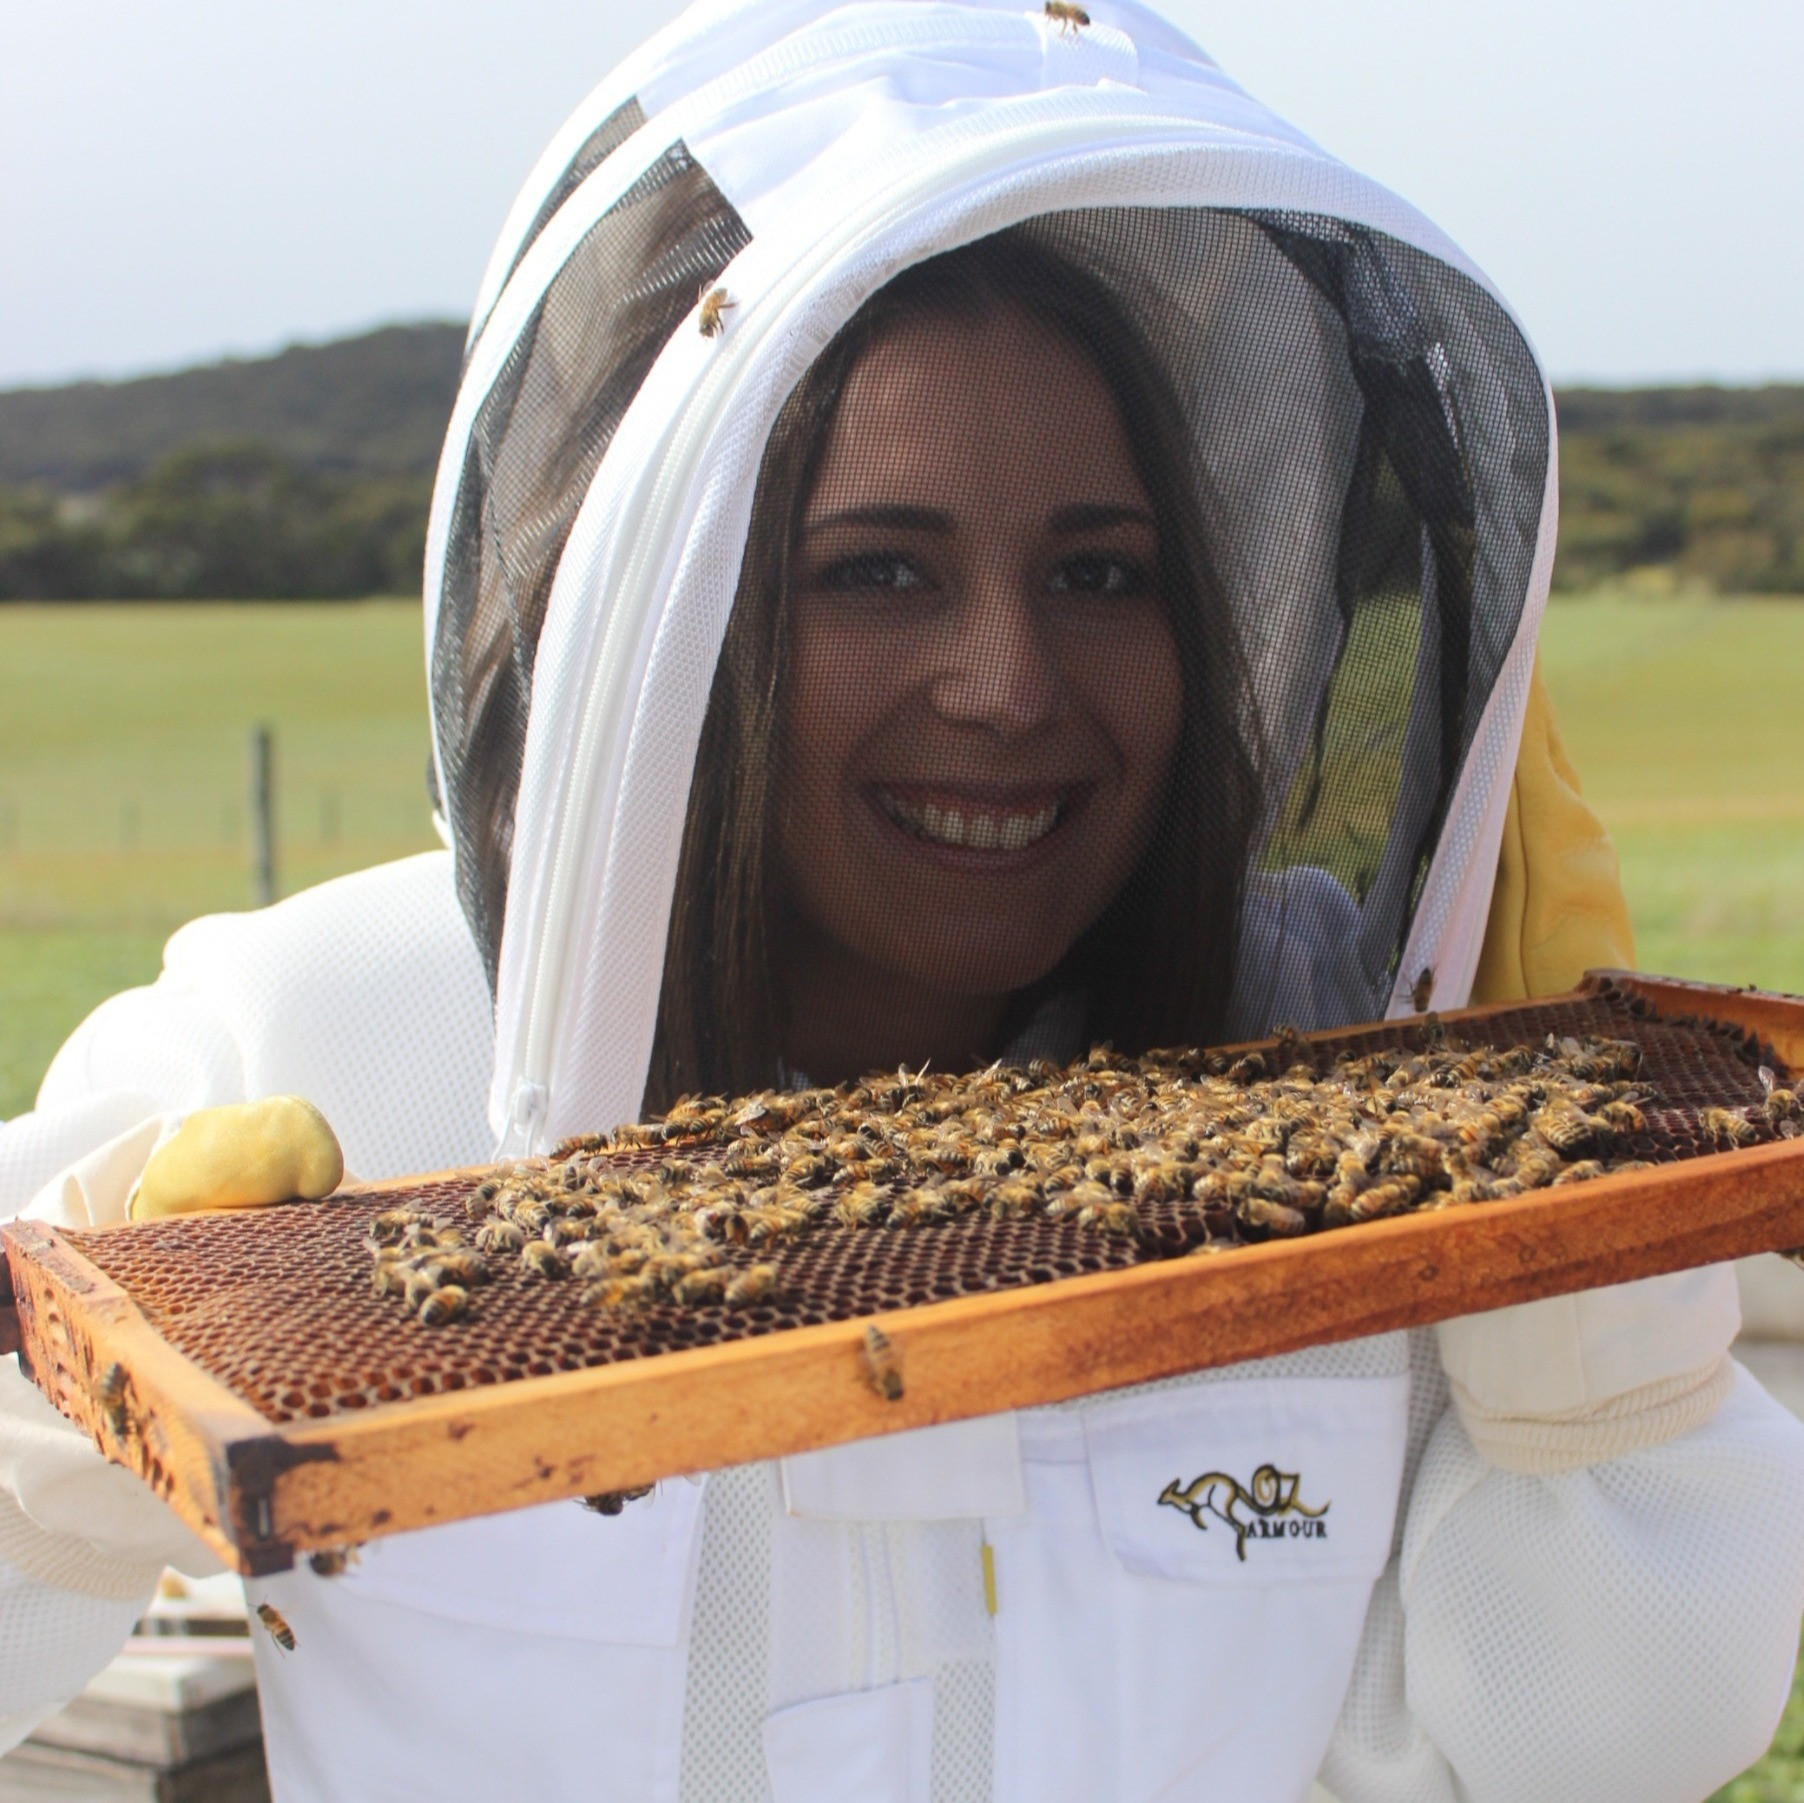 Beekeeping Experience - PRIVATE